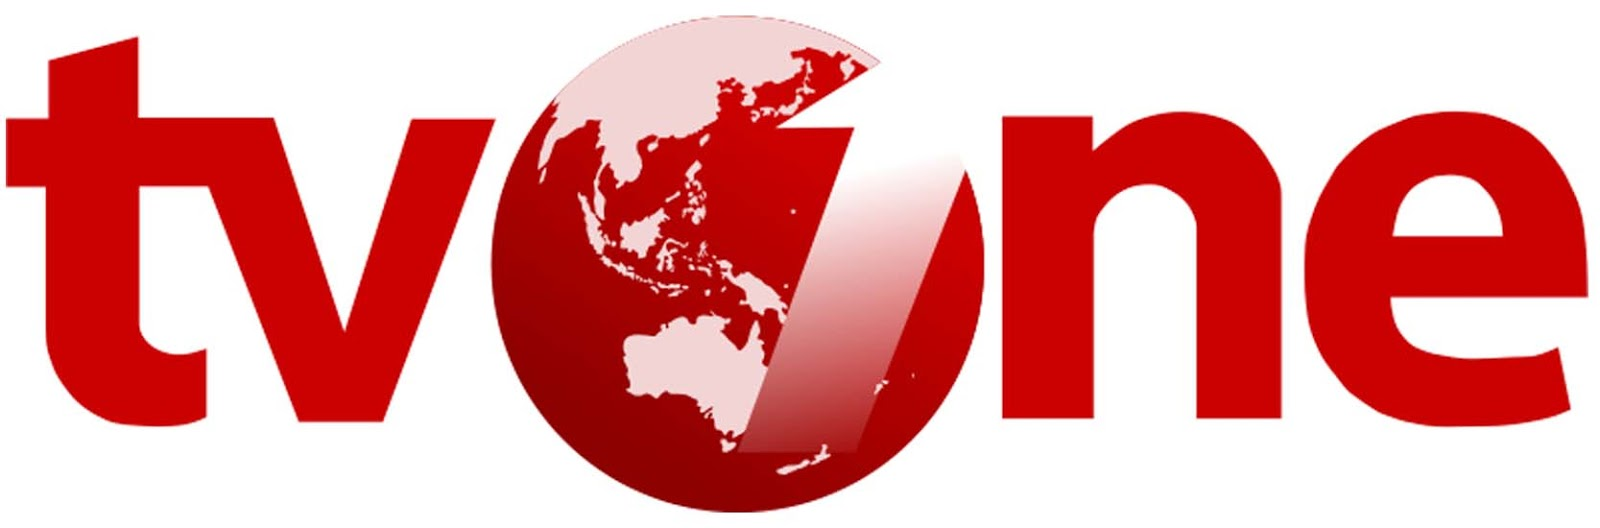 TV One | Siaran Langsung TVOne | Berita Terkini TV One